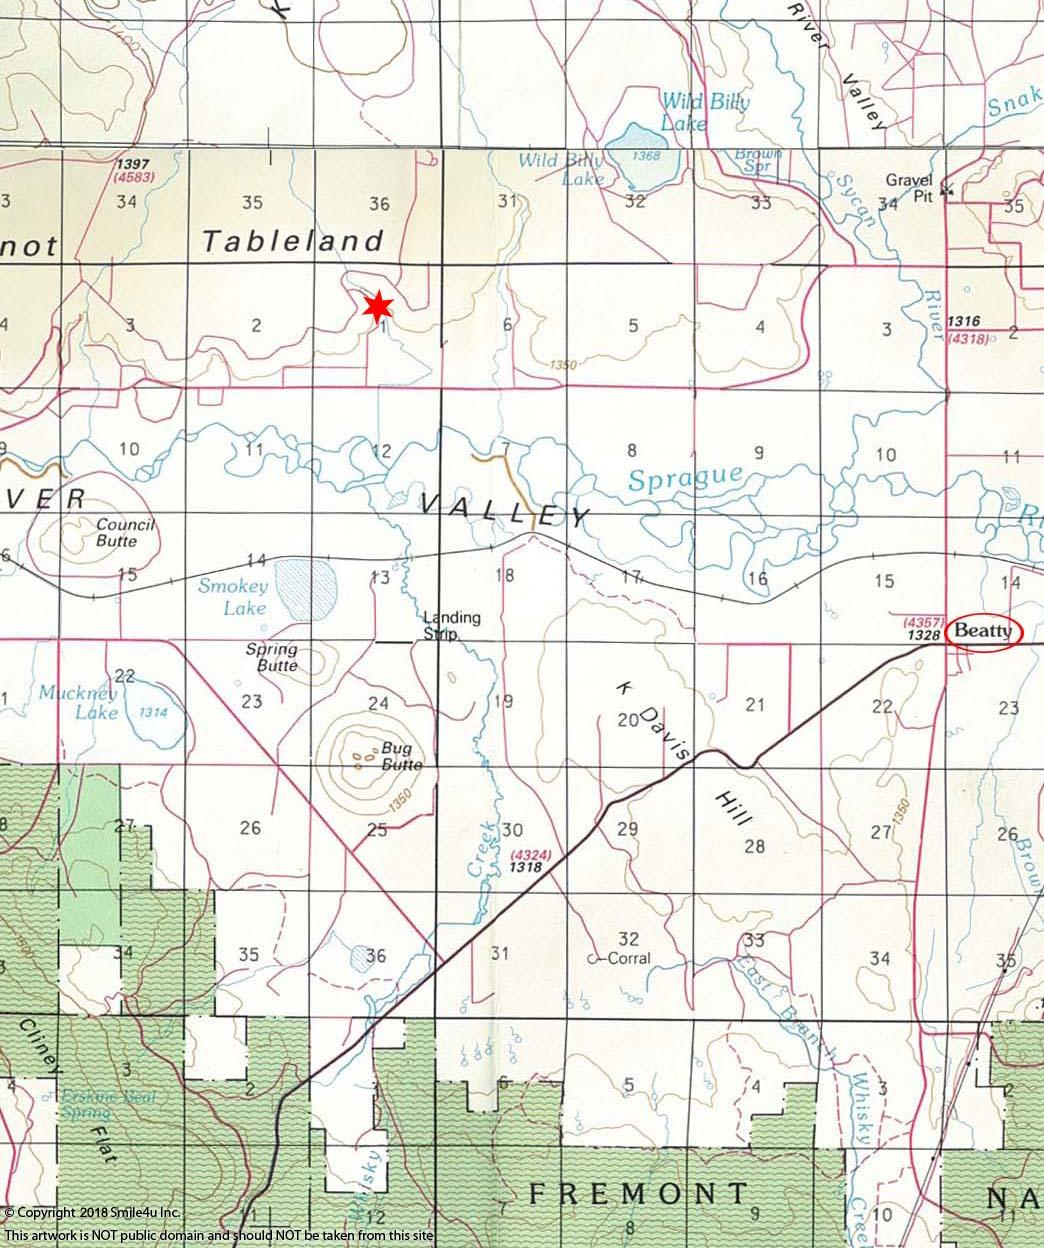 367993_watermarked_blm map merged beatty.jpg